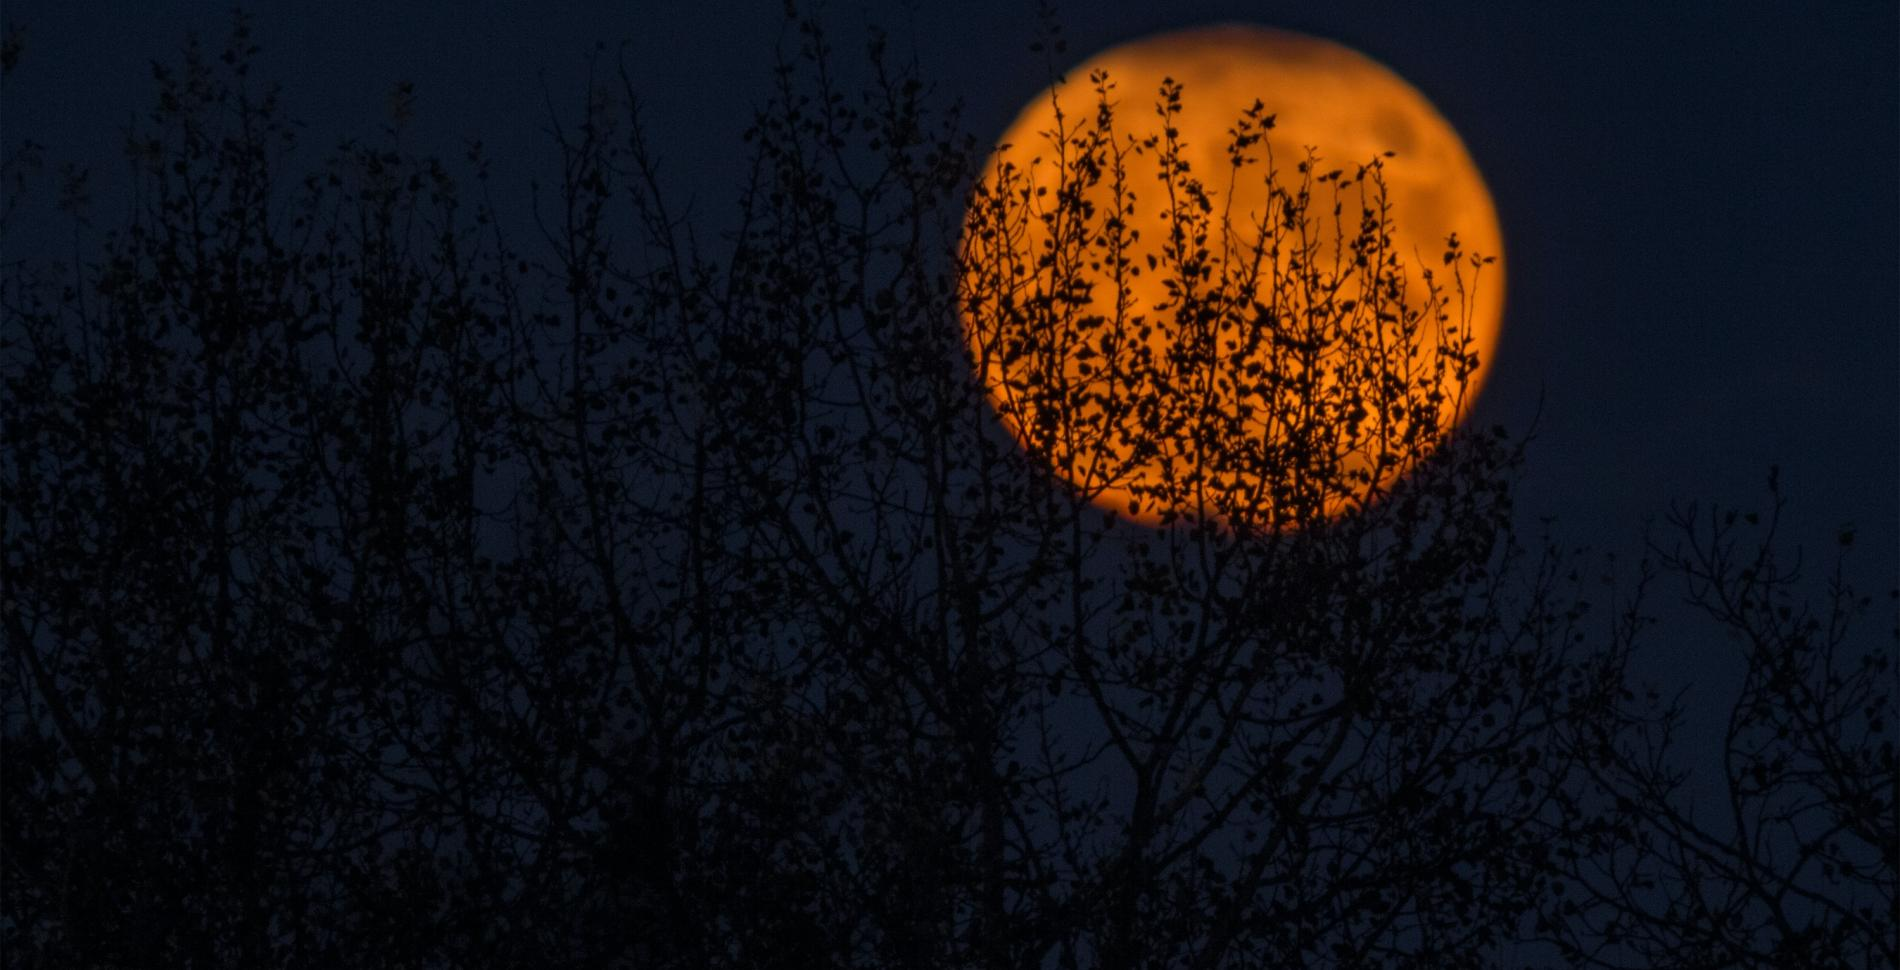 Orange moon behind trees